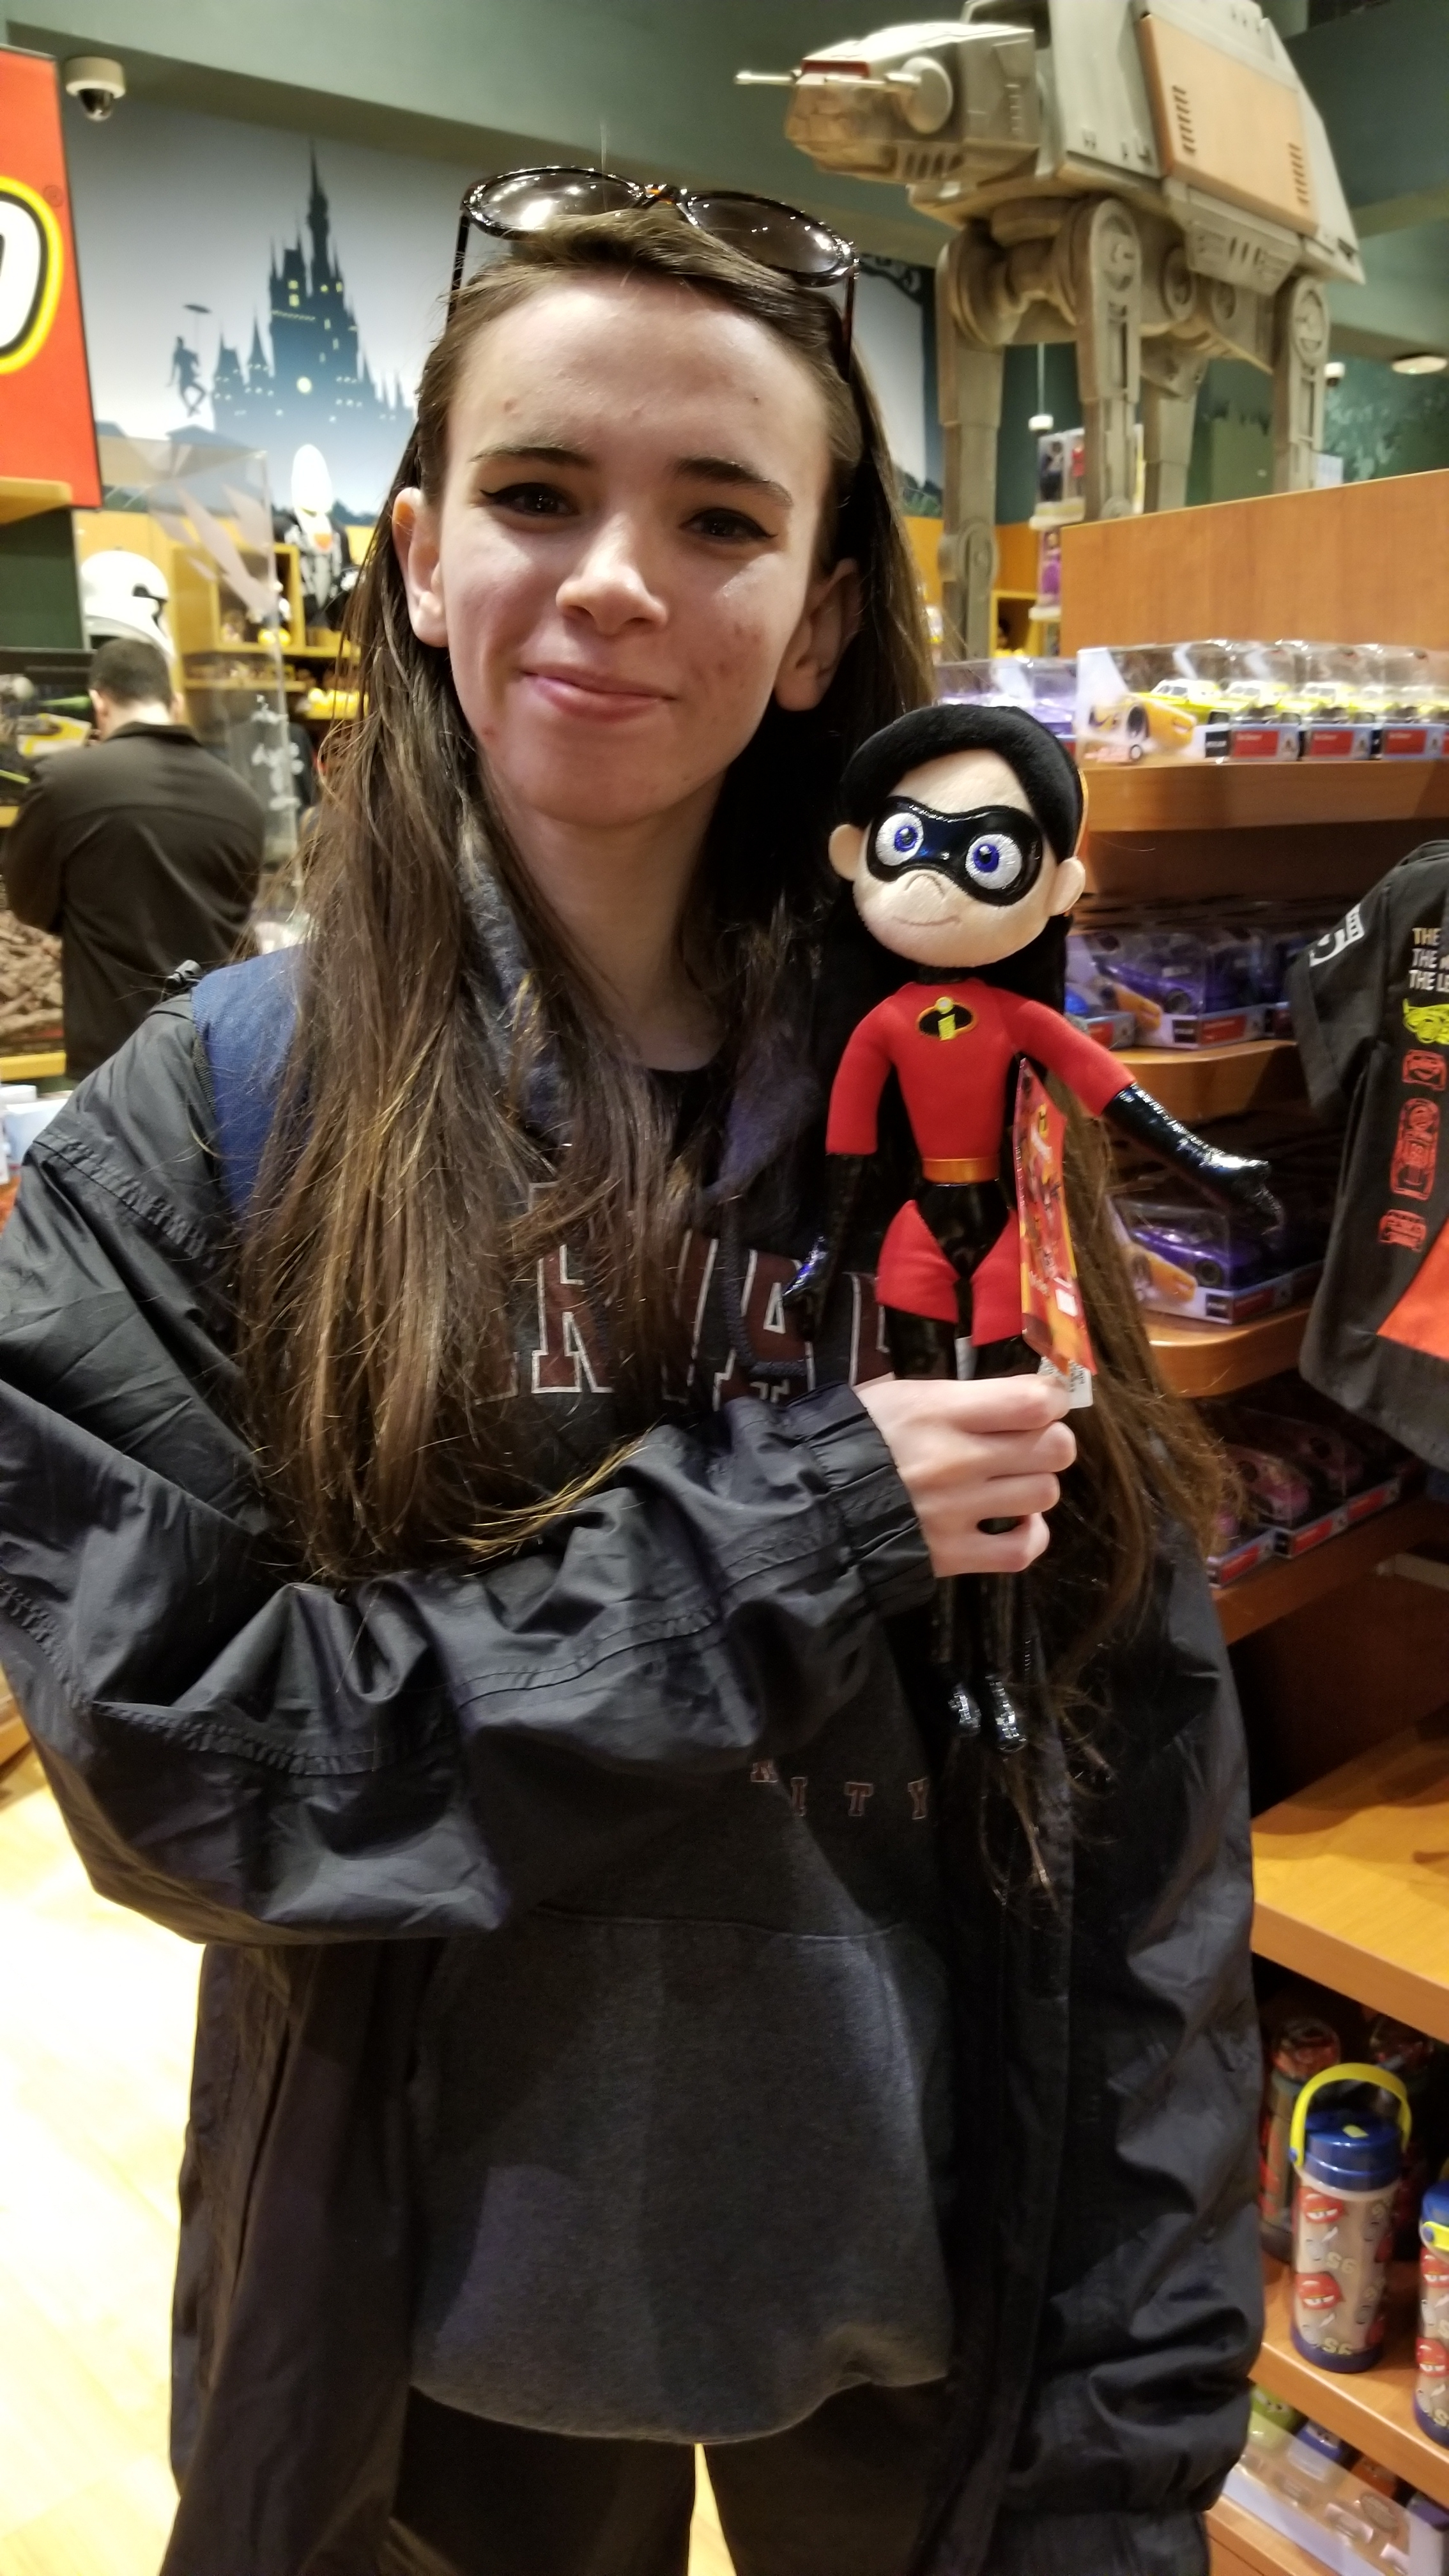 A lot of us thought that Christina here looks like Violet from 'The Incredibles.' So we found a Violet doll. Do you see a resemblance?